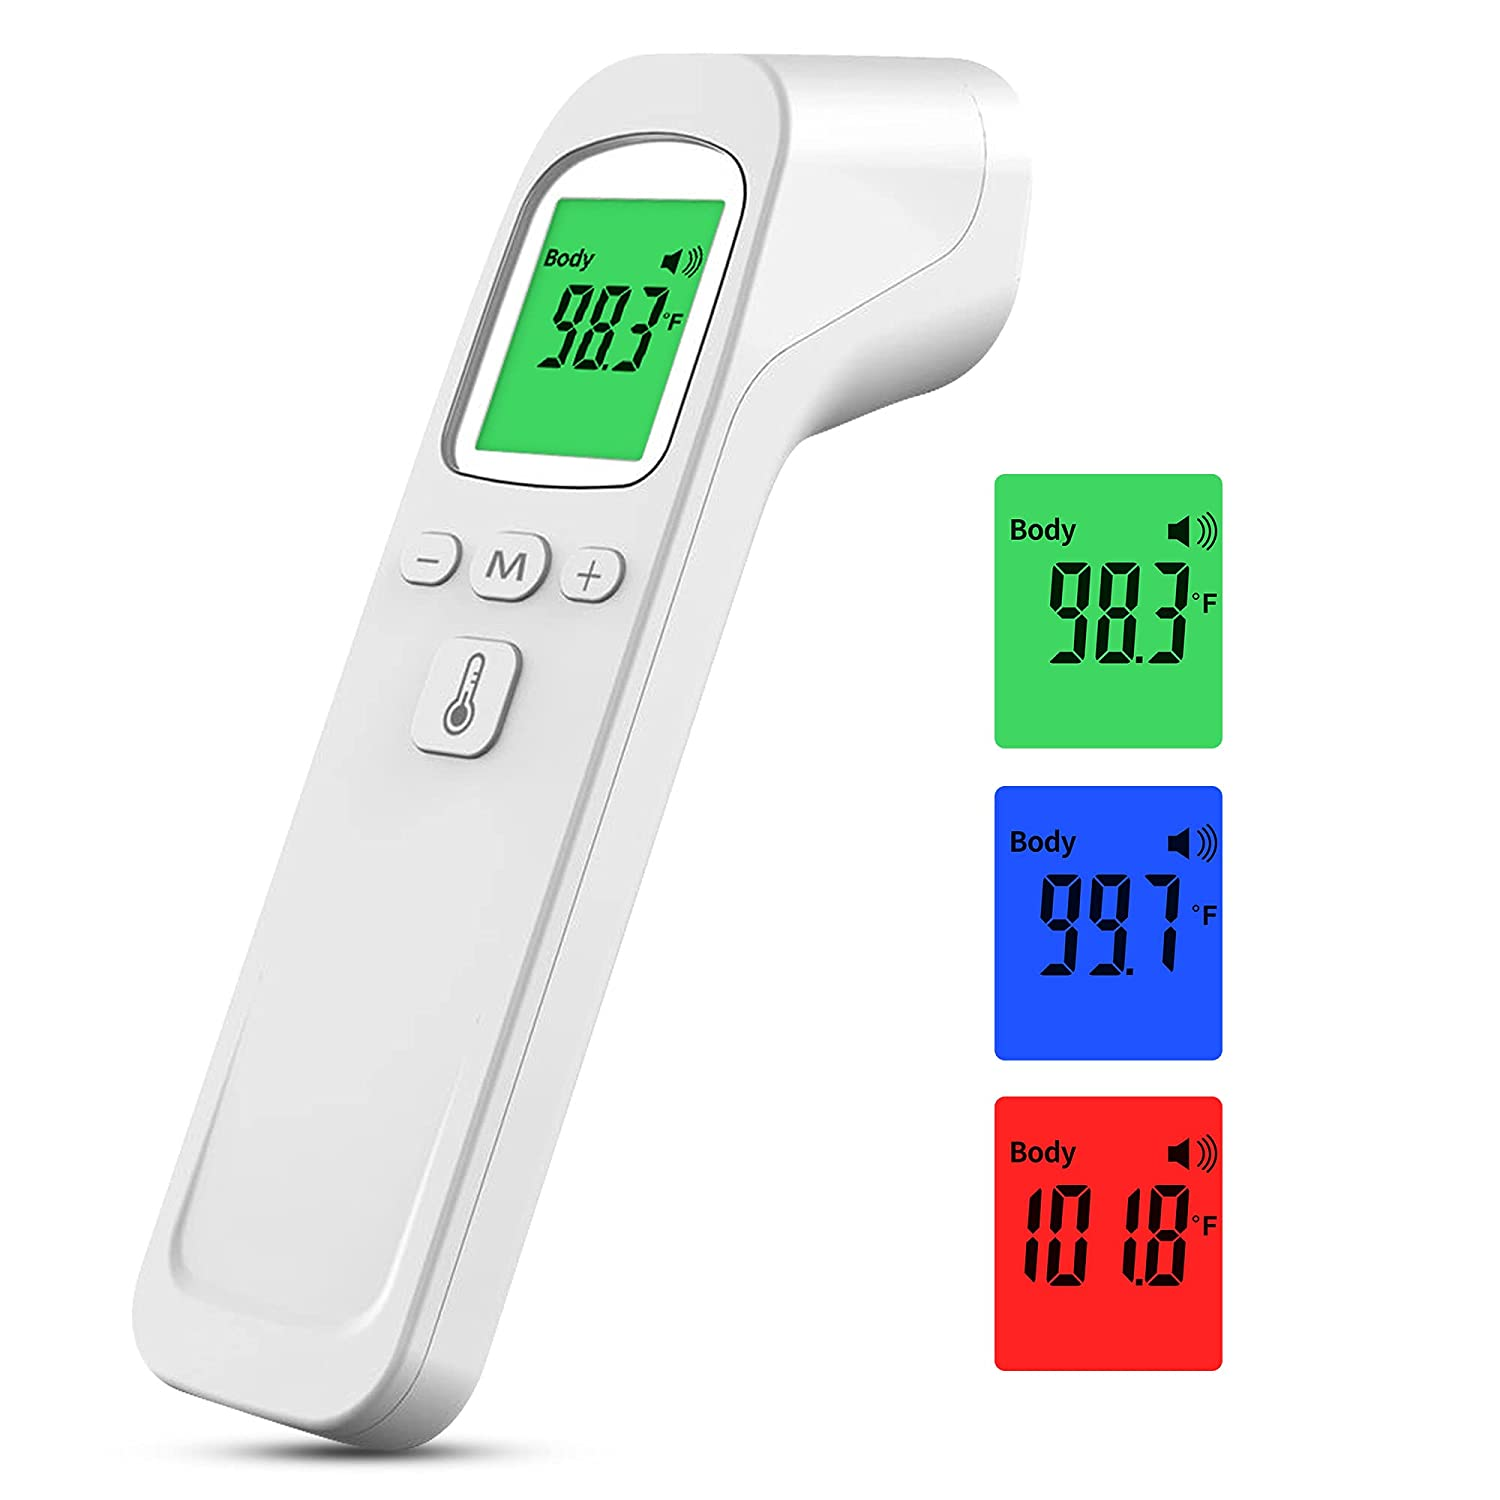 Forehead Thermometer Pro Digital Infrared Thermometer for Kids and Adults Non-Contact Digital IR Infrared Forehead Thermometer with Instant Accurate Reading Fever Alarm and Memory Function